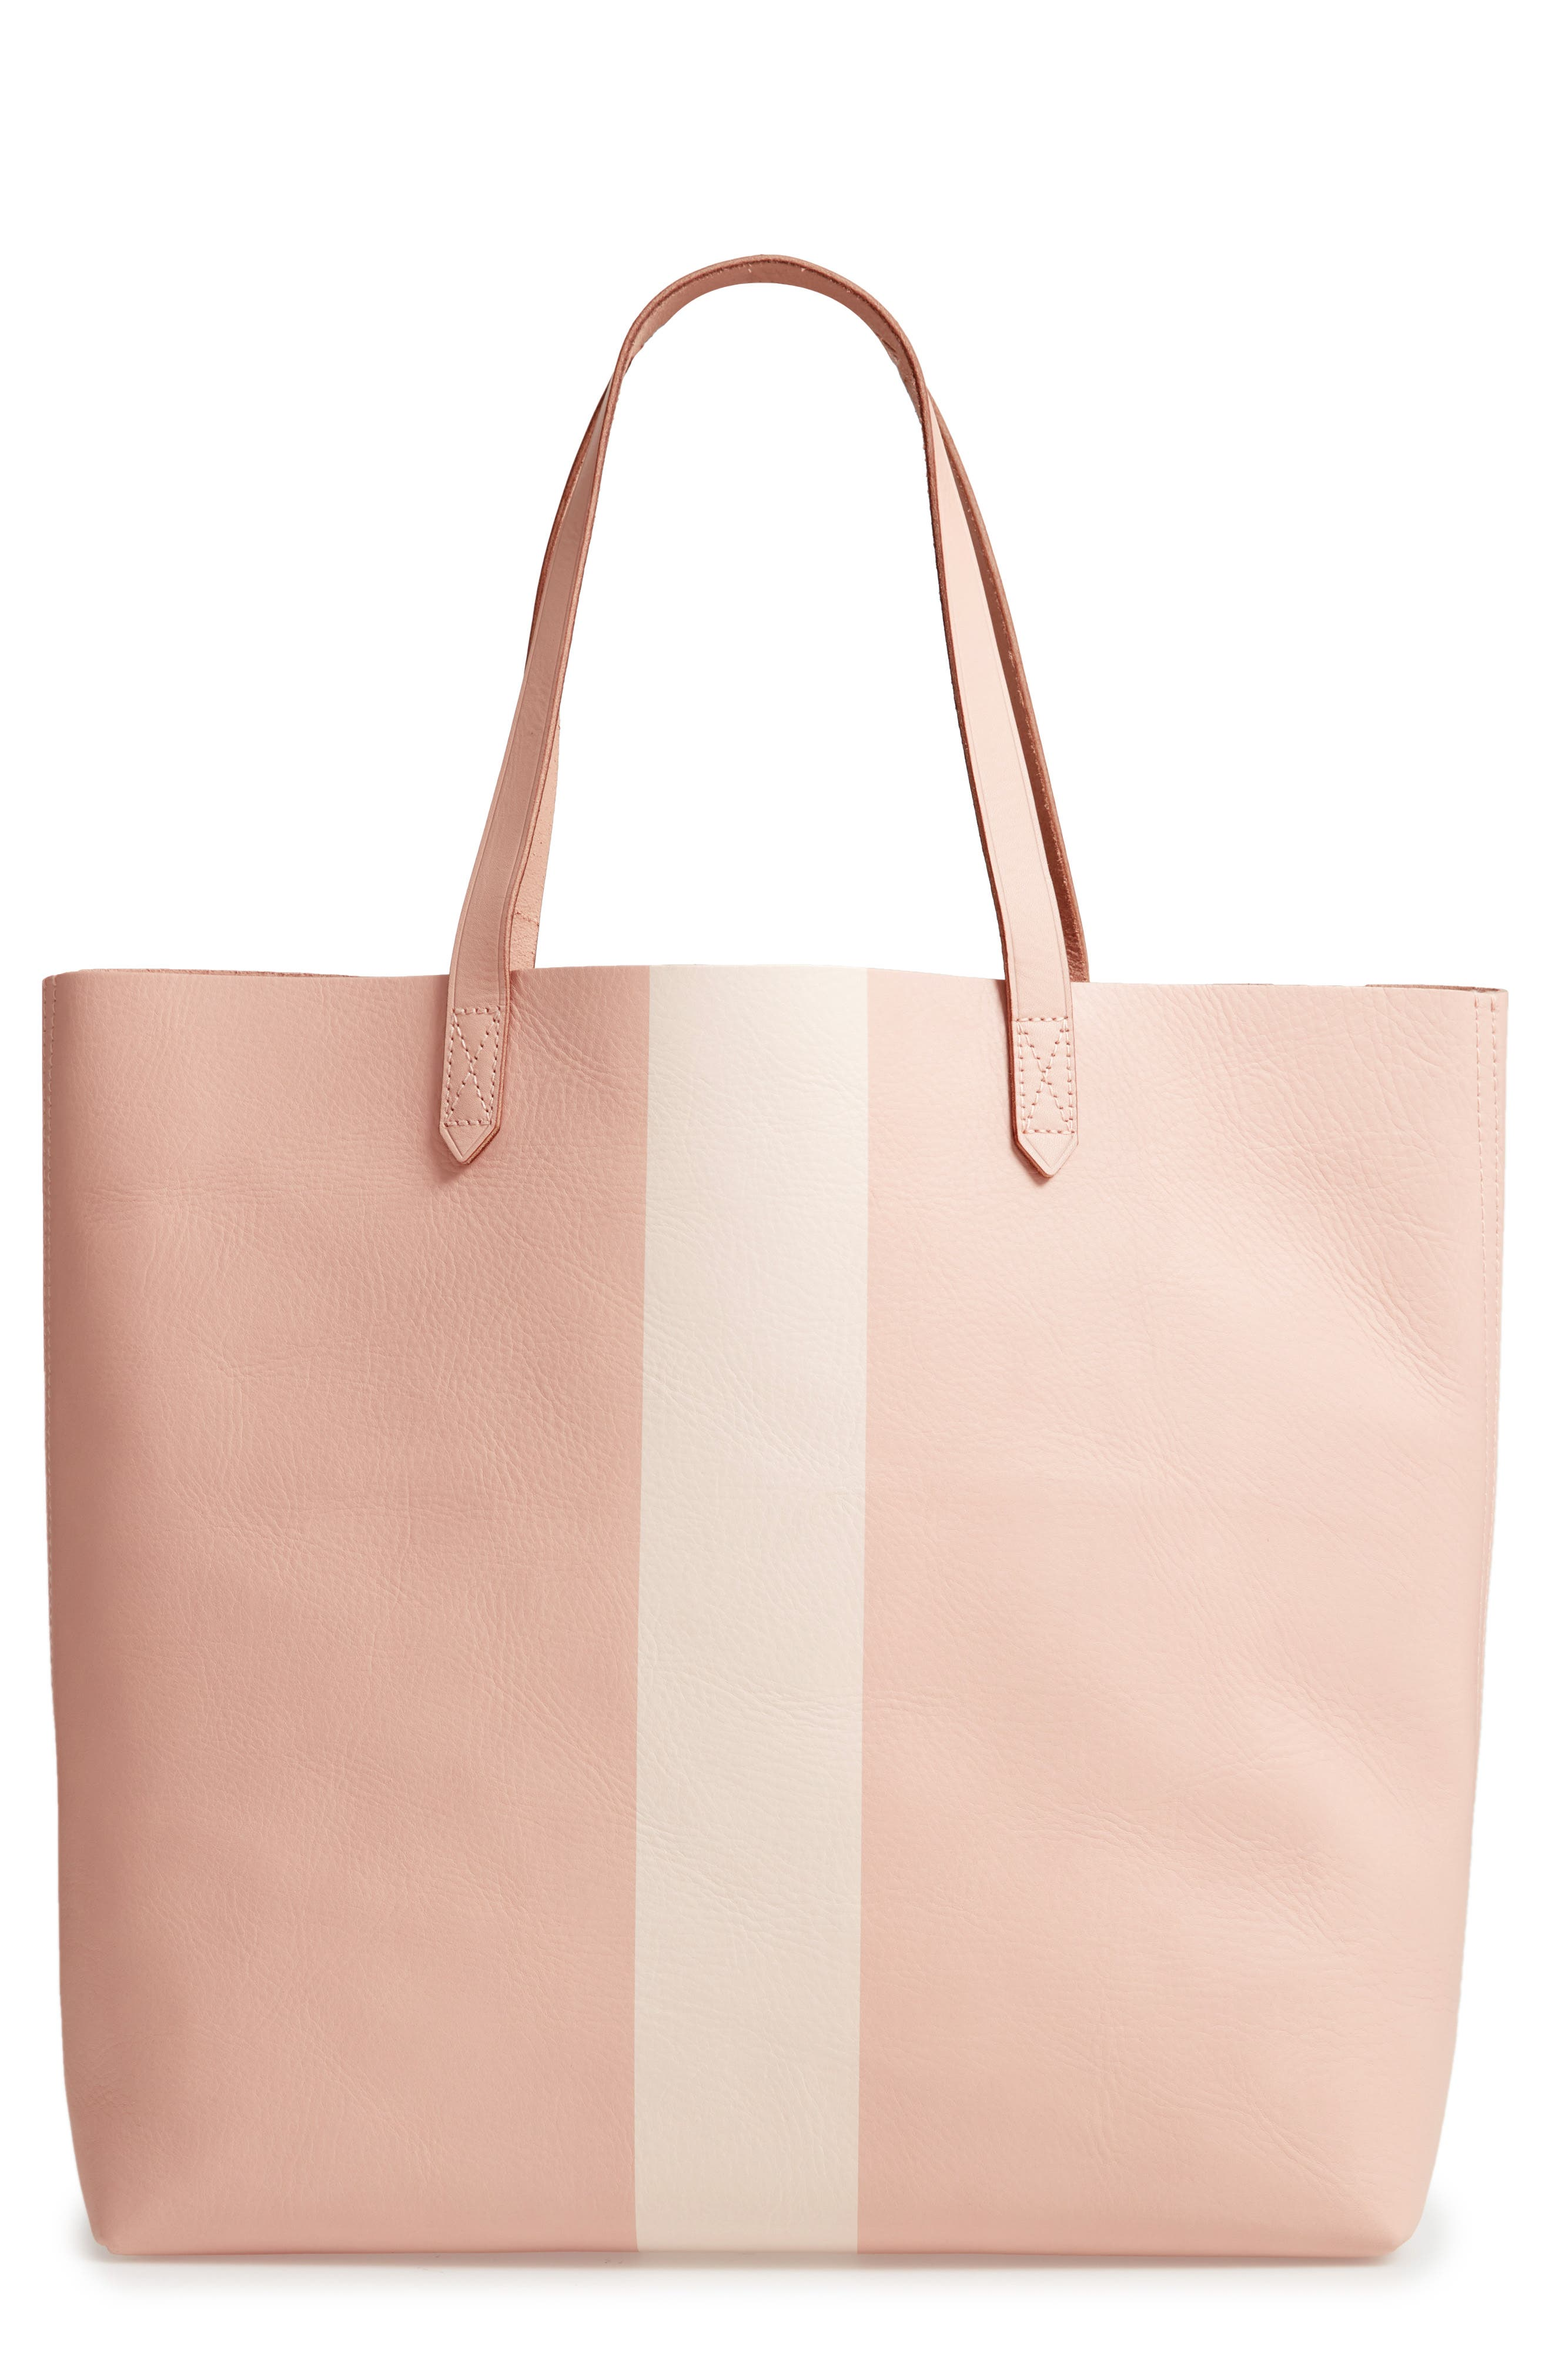 Paint Stripe Transport Leather Tote,                         Main,                         color, SHEER PINK STRIPE